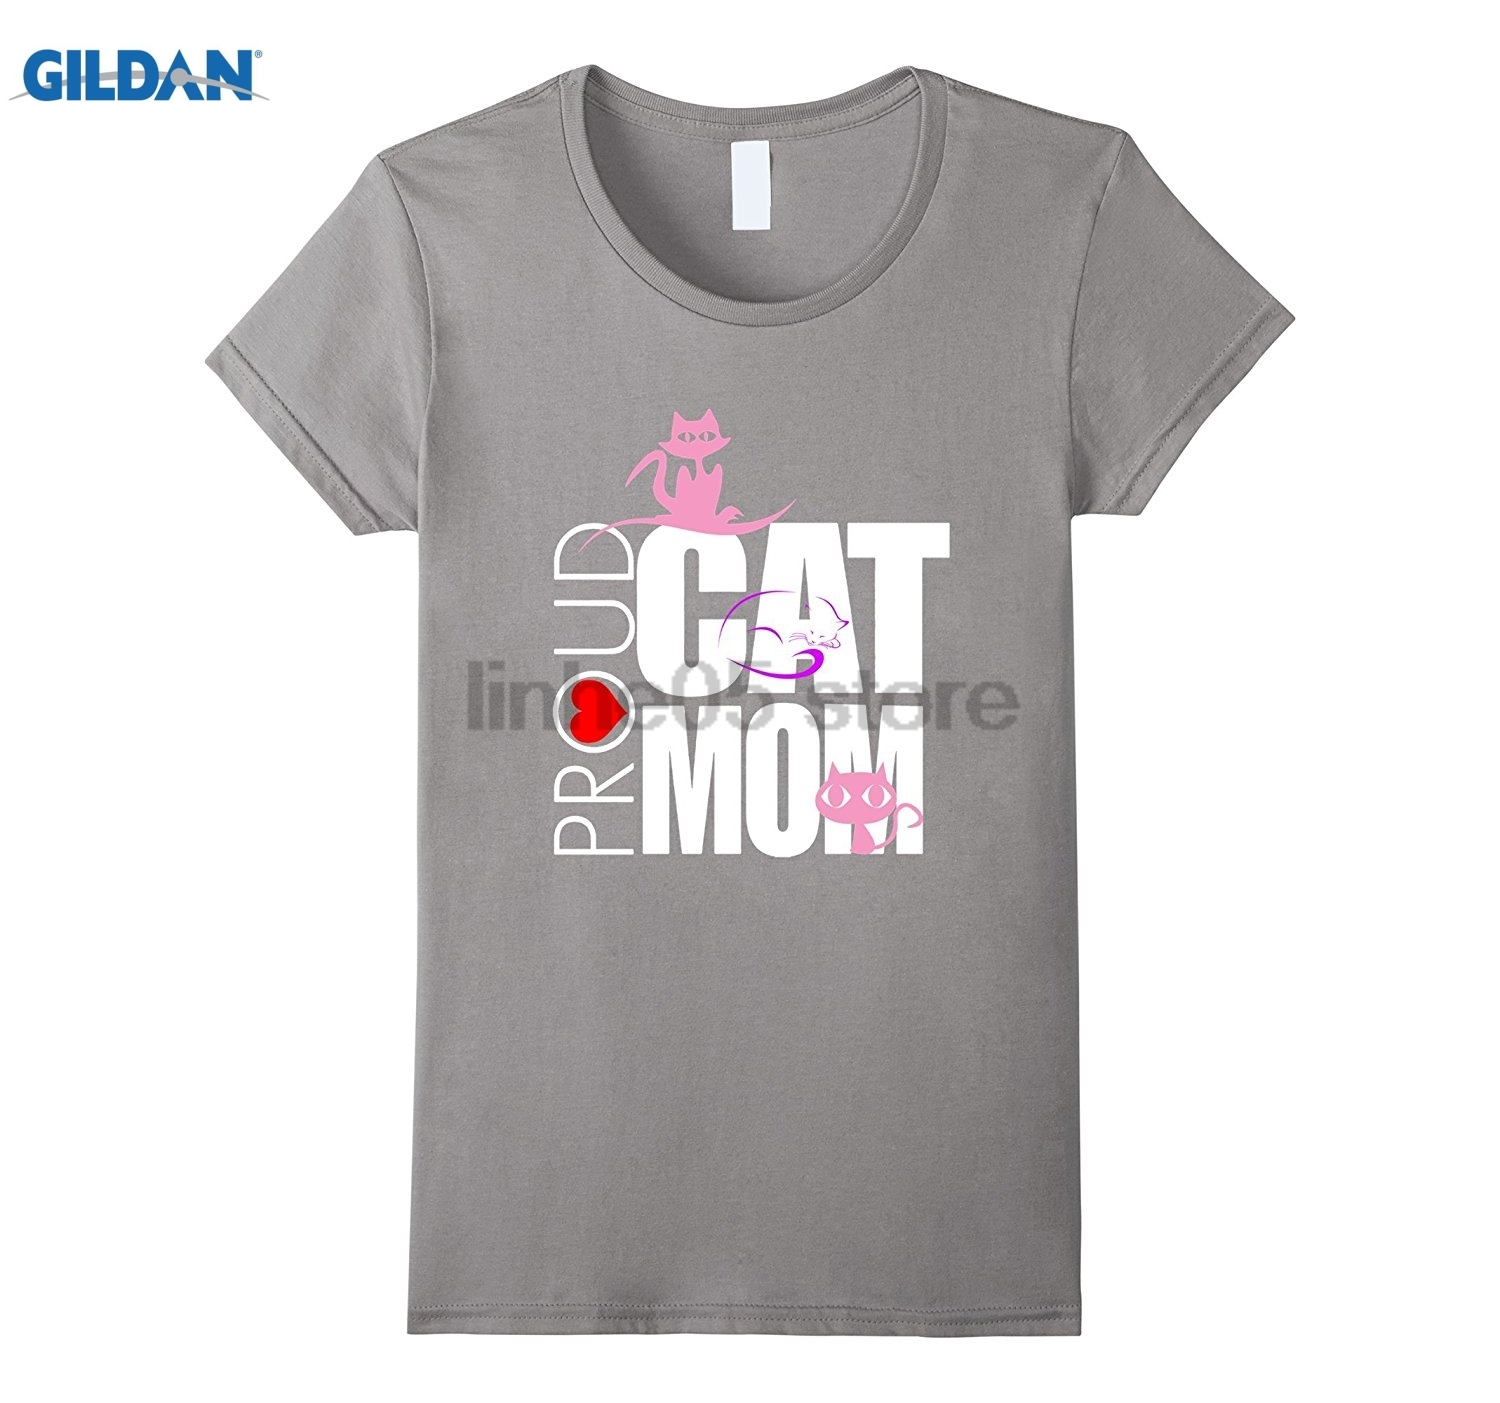 GILDAN PROUD MOM T-SHIRT Hot Womens T-shirt